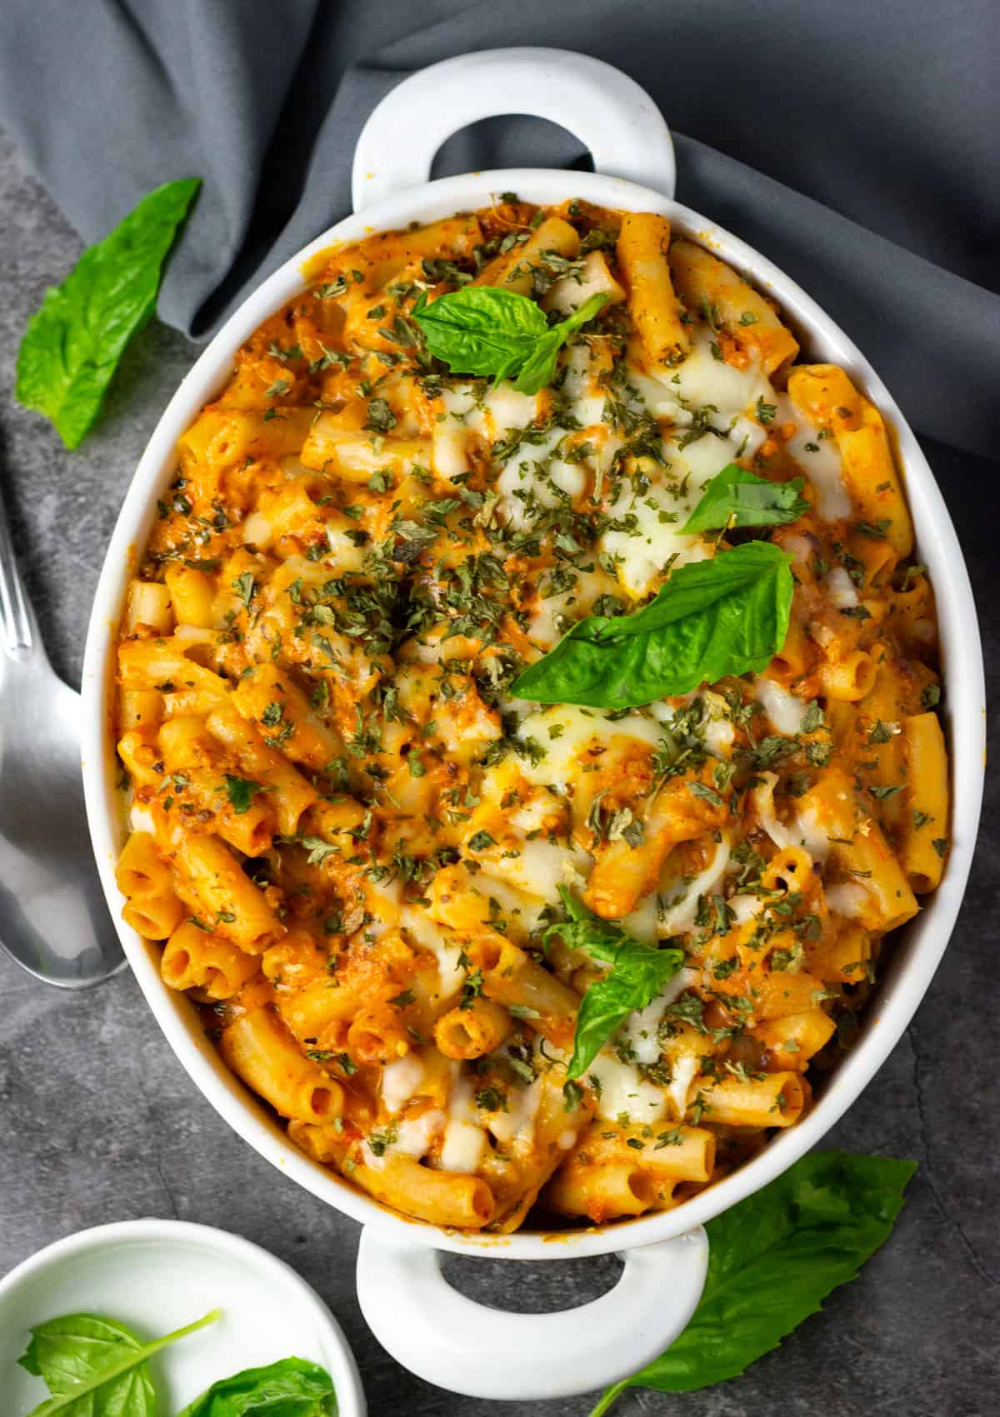 Enjoy My Vegan Baked Ziti Recipe It Is Easy To Prepare Perfect Weeknight Dinner Oven Baked Pasta With Marina In 2020 Vegan Baked Ziti Recipe Ziti Recipes Baked Ziti